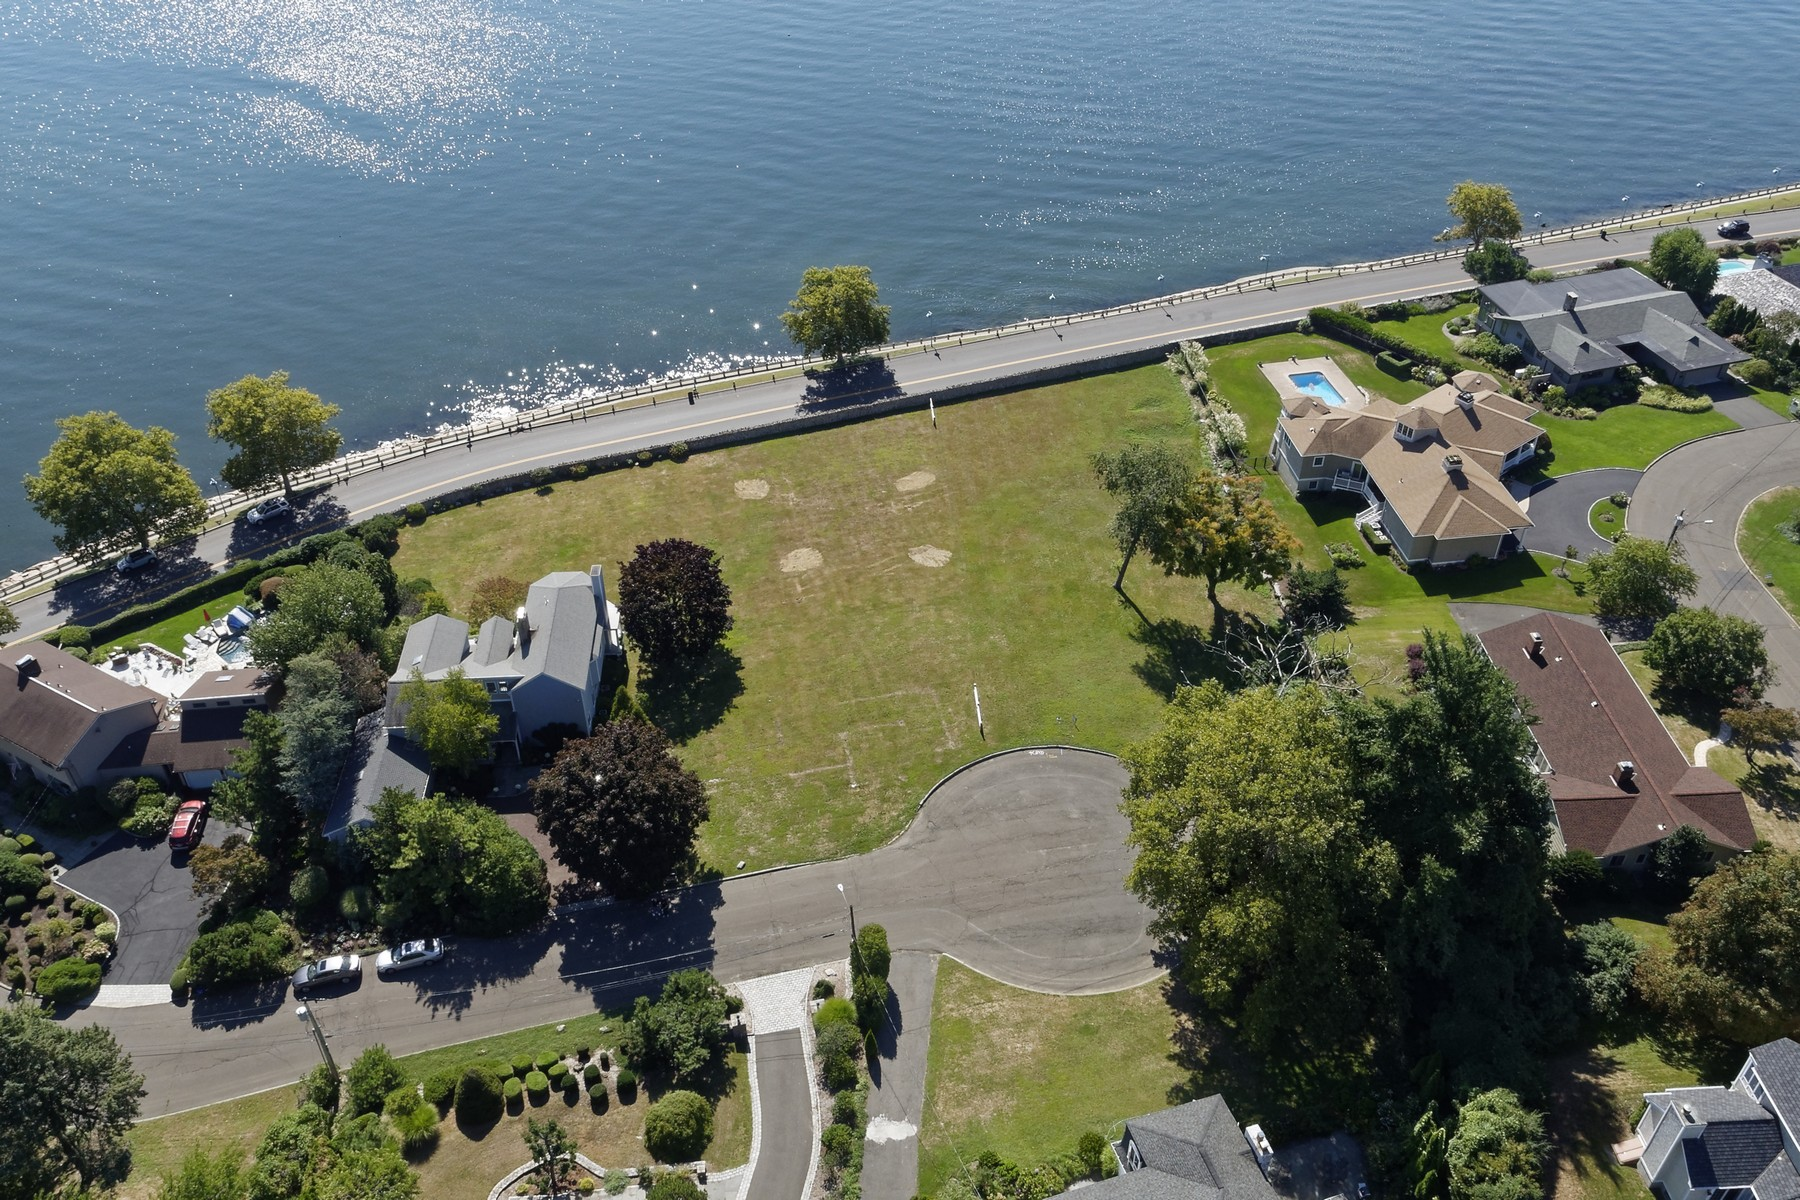 Terreno per Vendita alle ore Amazing Opportunity to Build Your Waterfront Dream Home in St. Mary's by the Sea 69 Armitage Drive Bridgeport, Connecticut, 06605 Stati Uniti